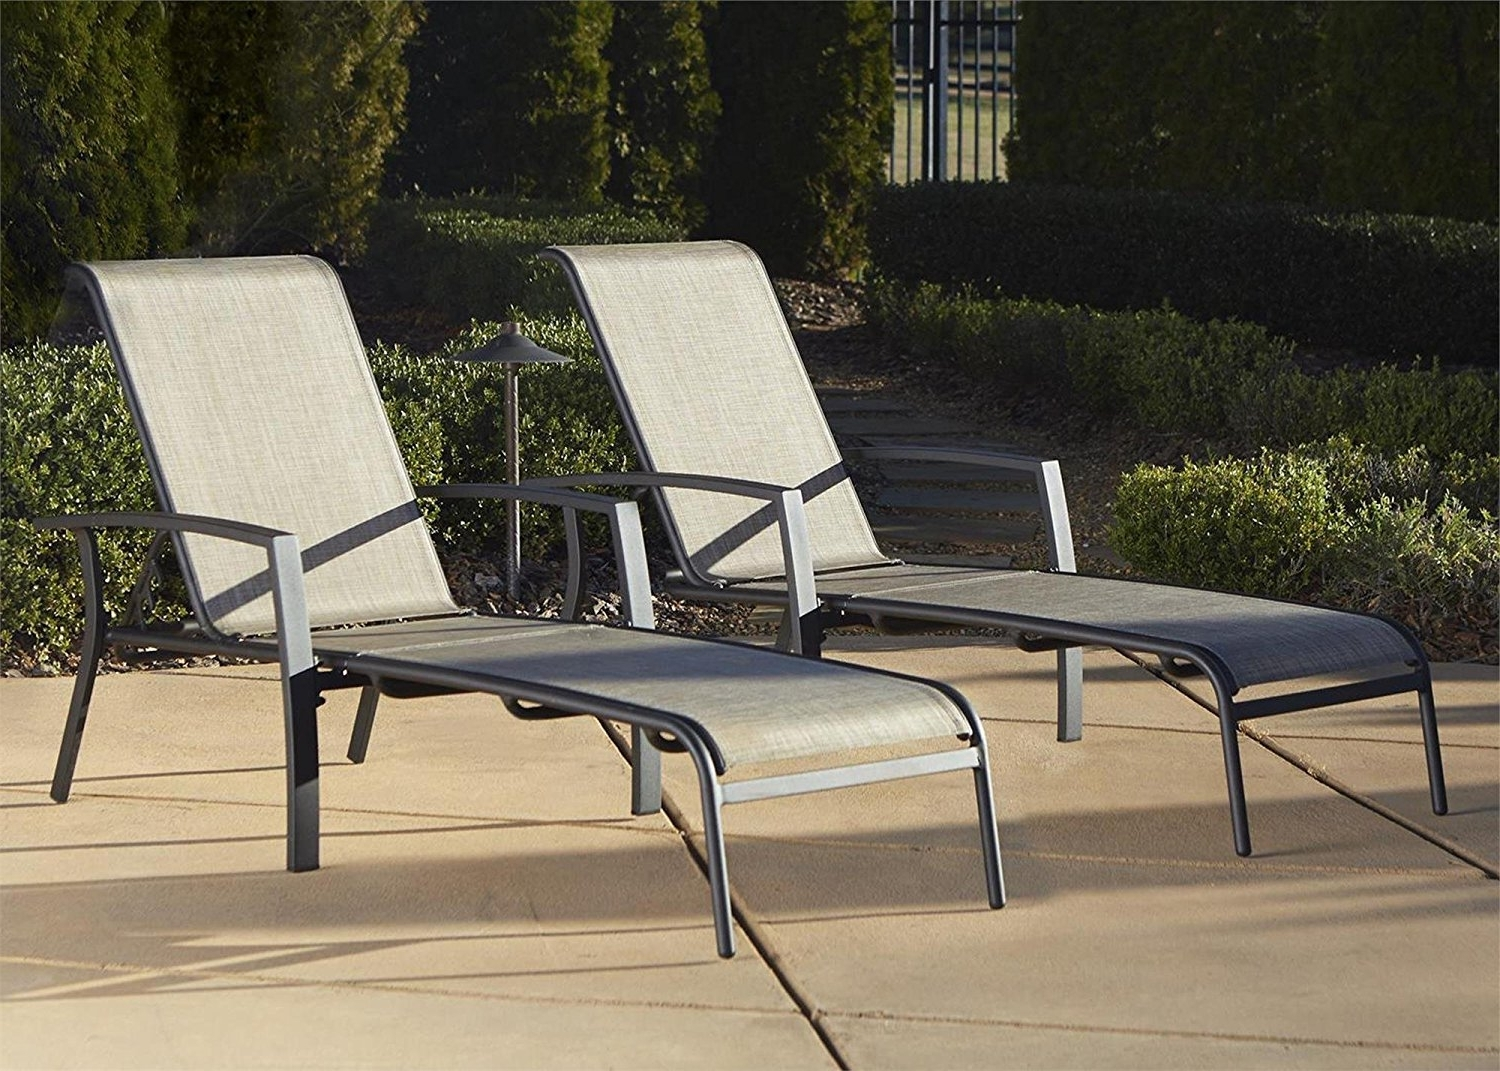 Preferred Brown Outdoor Chaise Lounge Chairs Inside Amazon: Cosco Outdoor Adjustable Aluminum Chaise Lounge Chair (View 6 of 15)